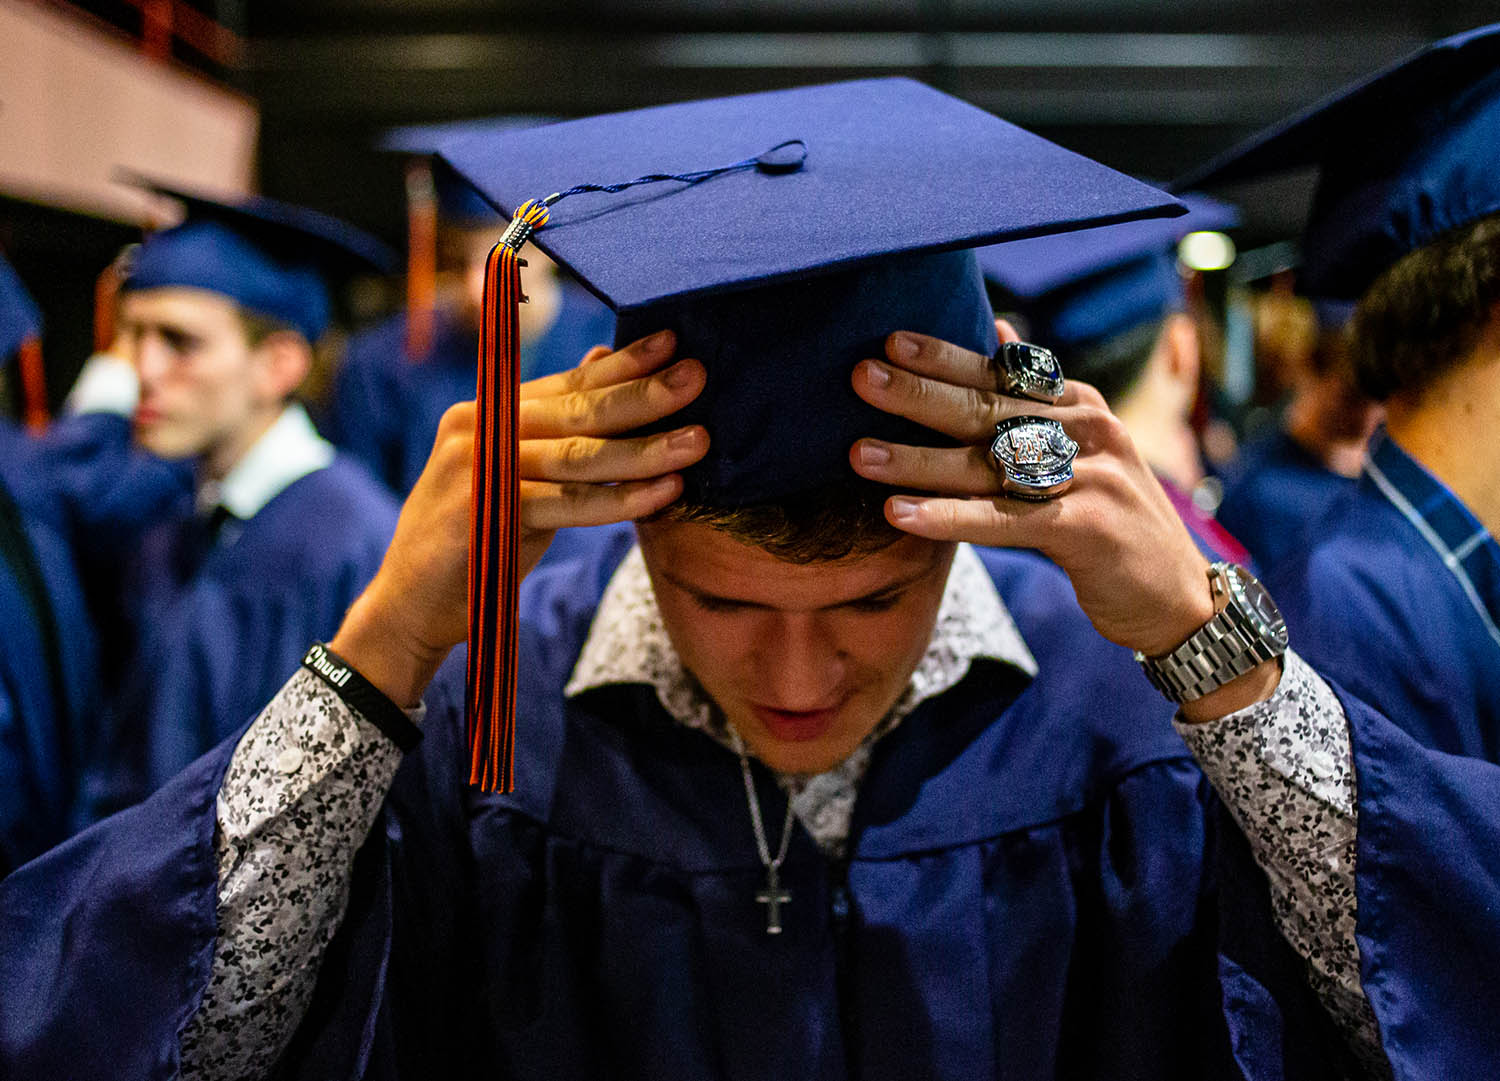 Cade Eddington adjusts his graduation cap while wearing the championship rings from his time playing football for Rochester High School as the Class of 2019 prepares for their graduation ceremony at the Sangamon Auditorium at the University of Illinois Springfield, Sunday, May 26, 2019, in Springfield, Ill. [Justin L. Fowler/The State Journal-Register]